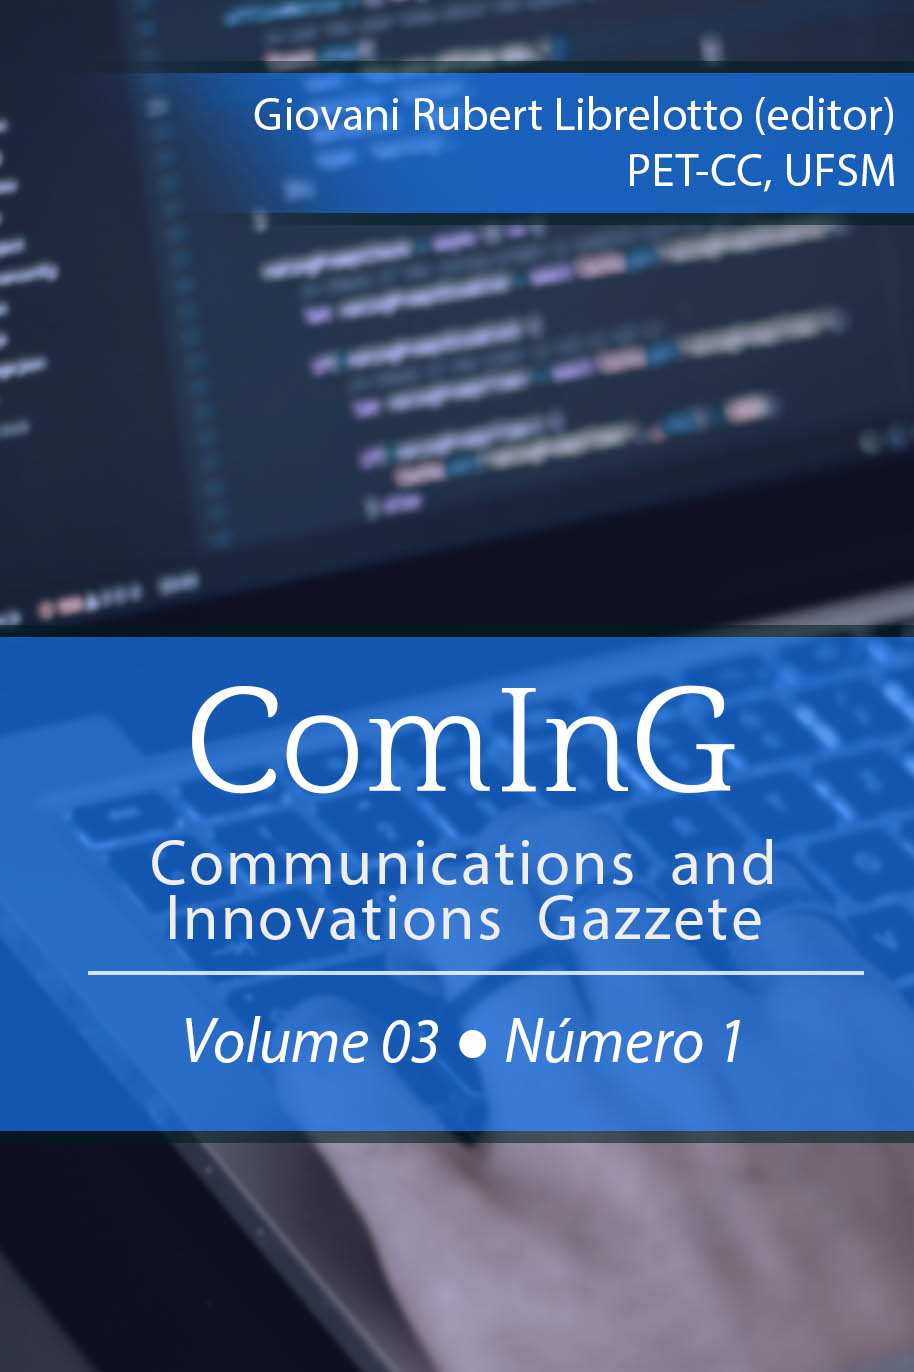 ComInG - Communications and Innovations Gazette, Volume 02, Número 1